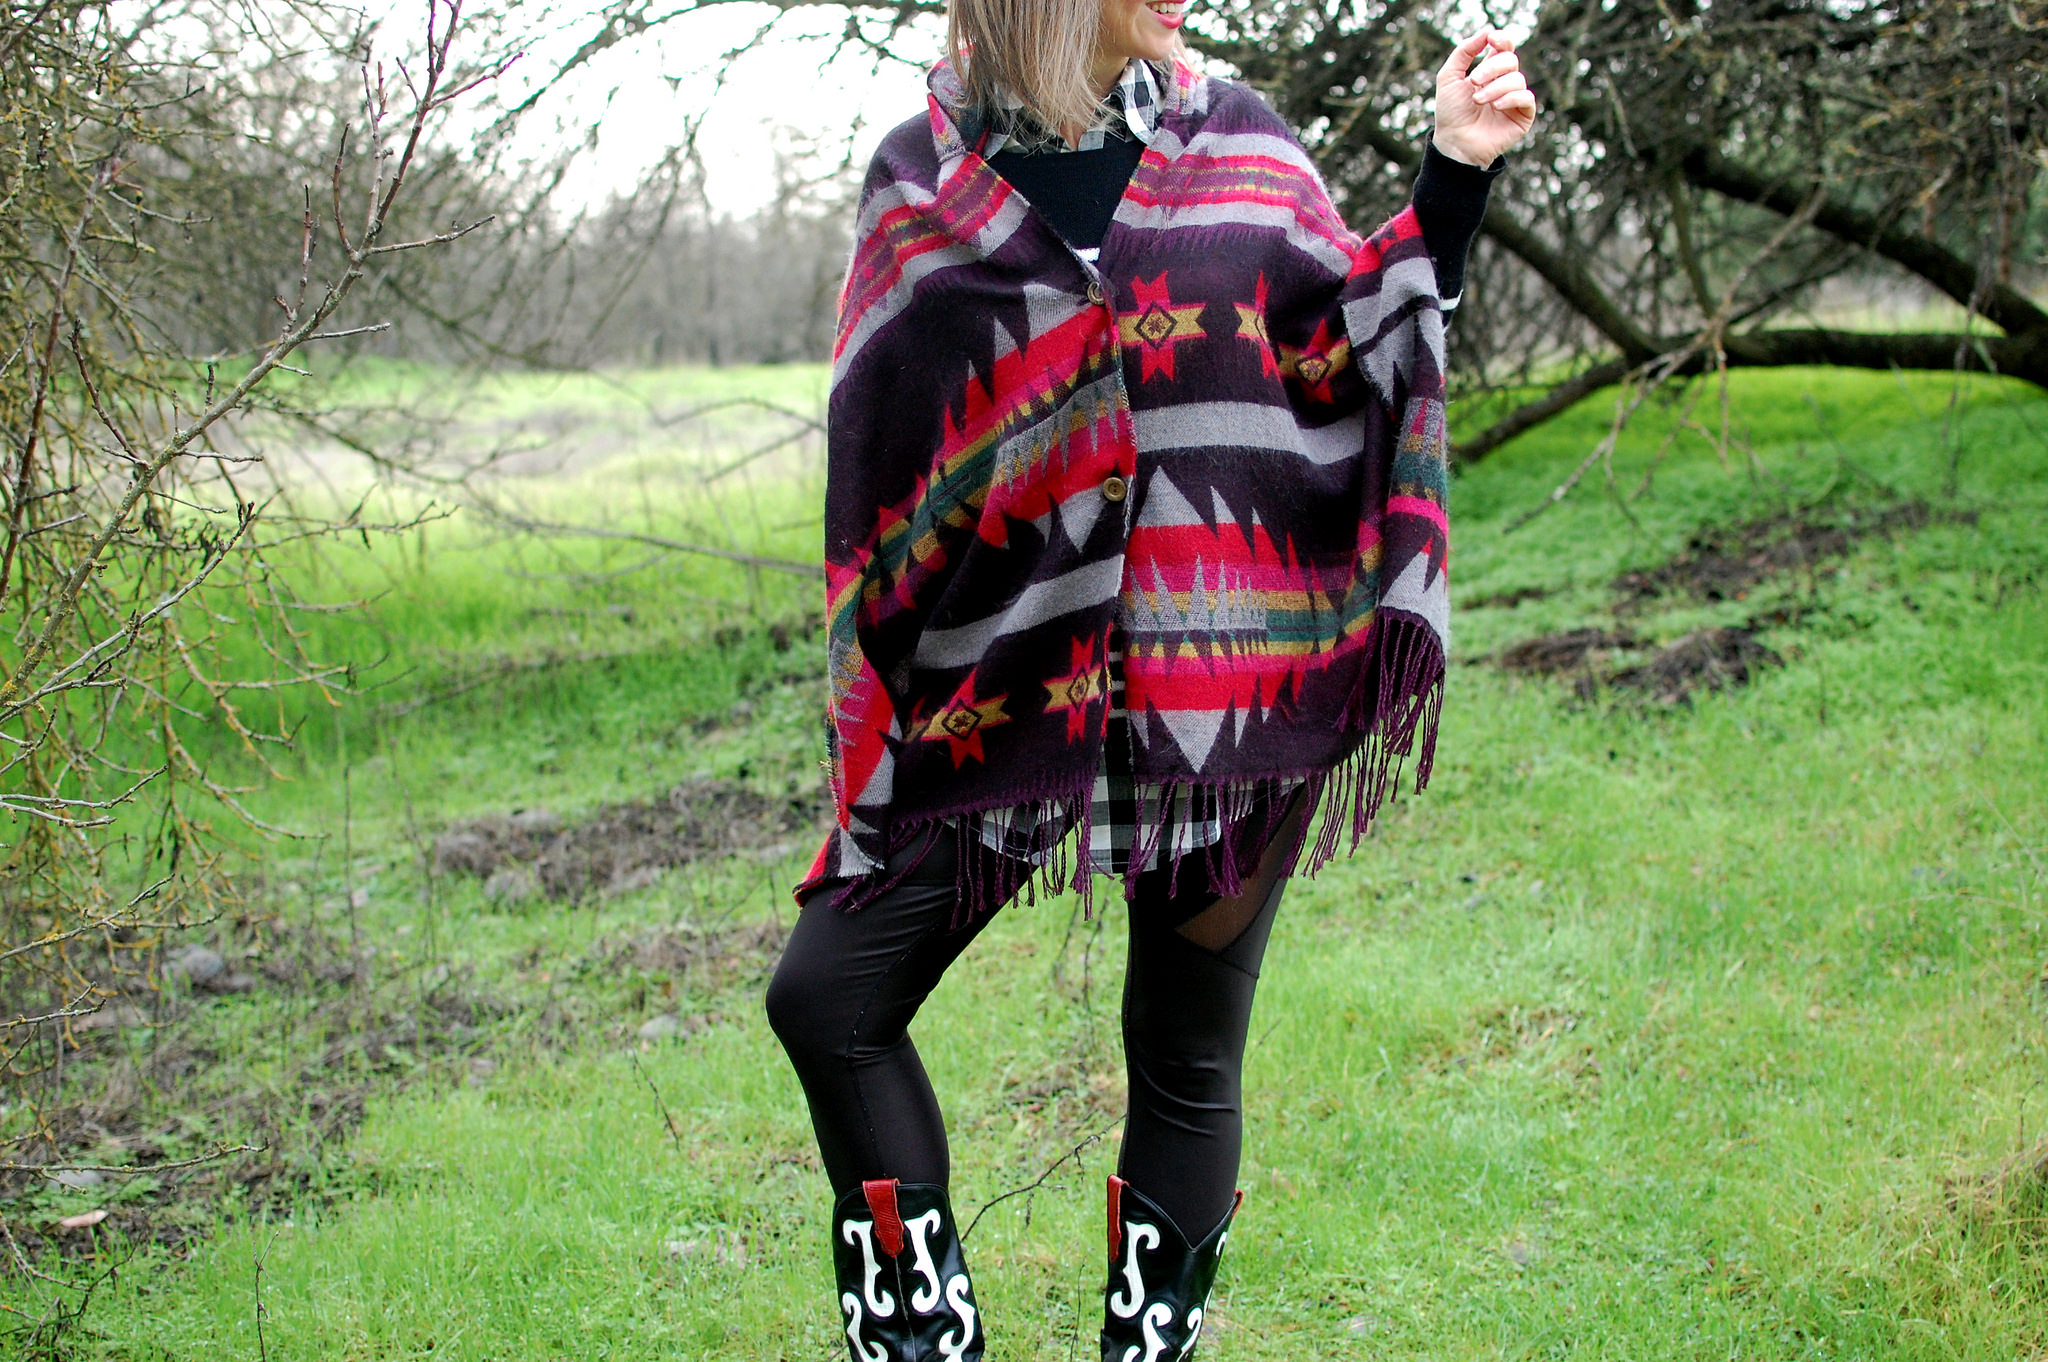 poncho ootd daily outfit blog whatiwore2day southwestern